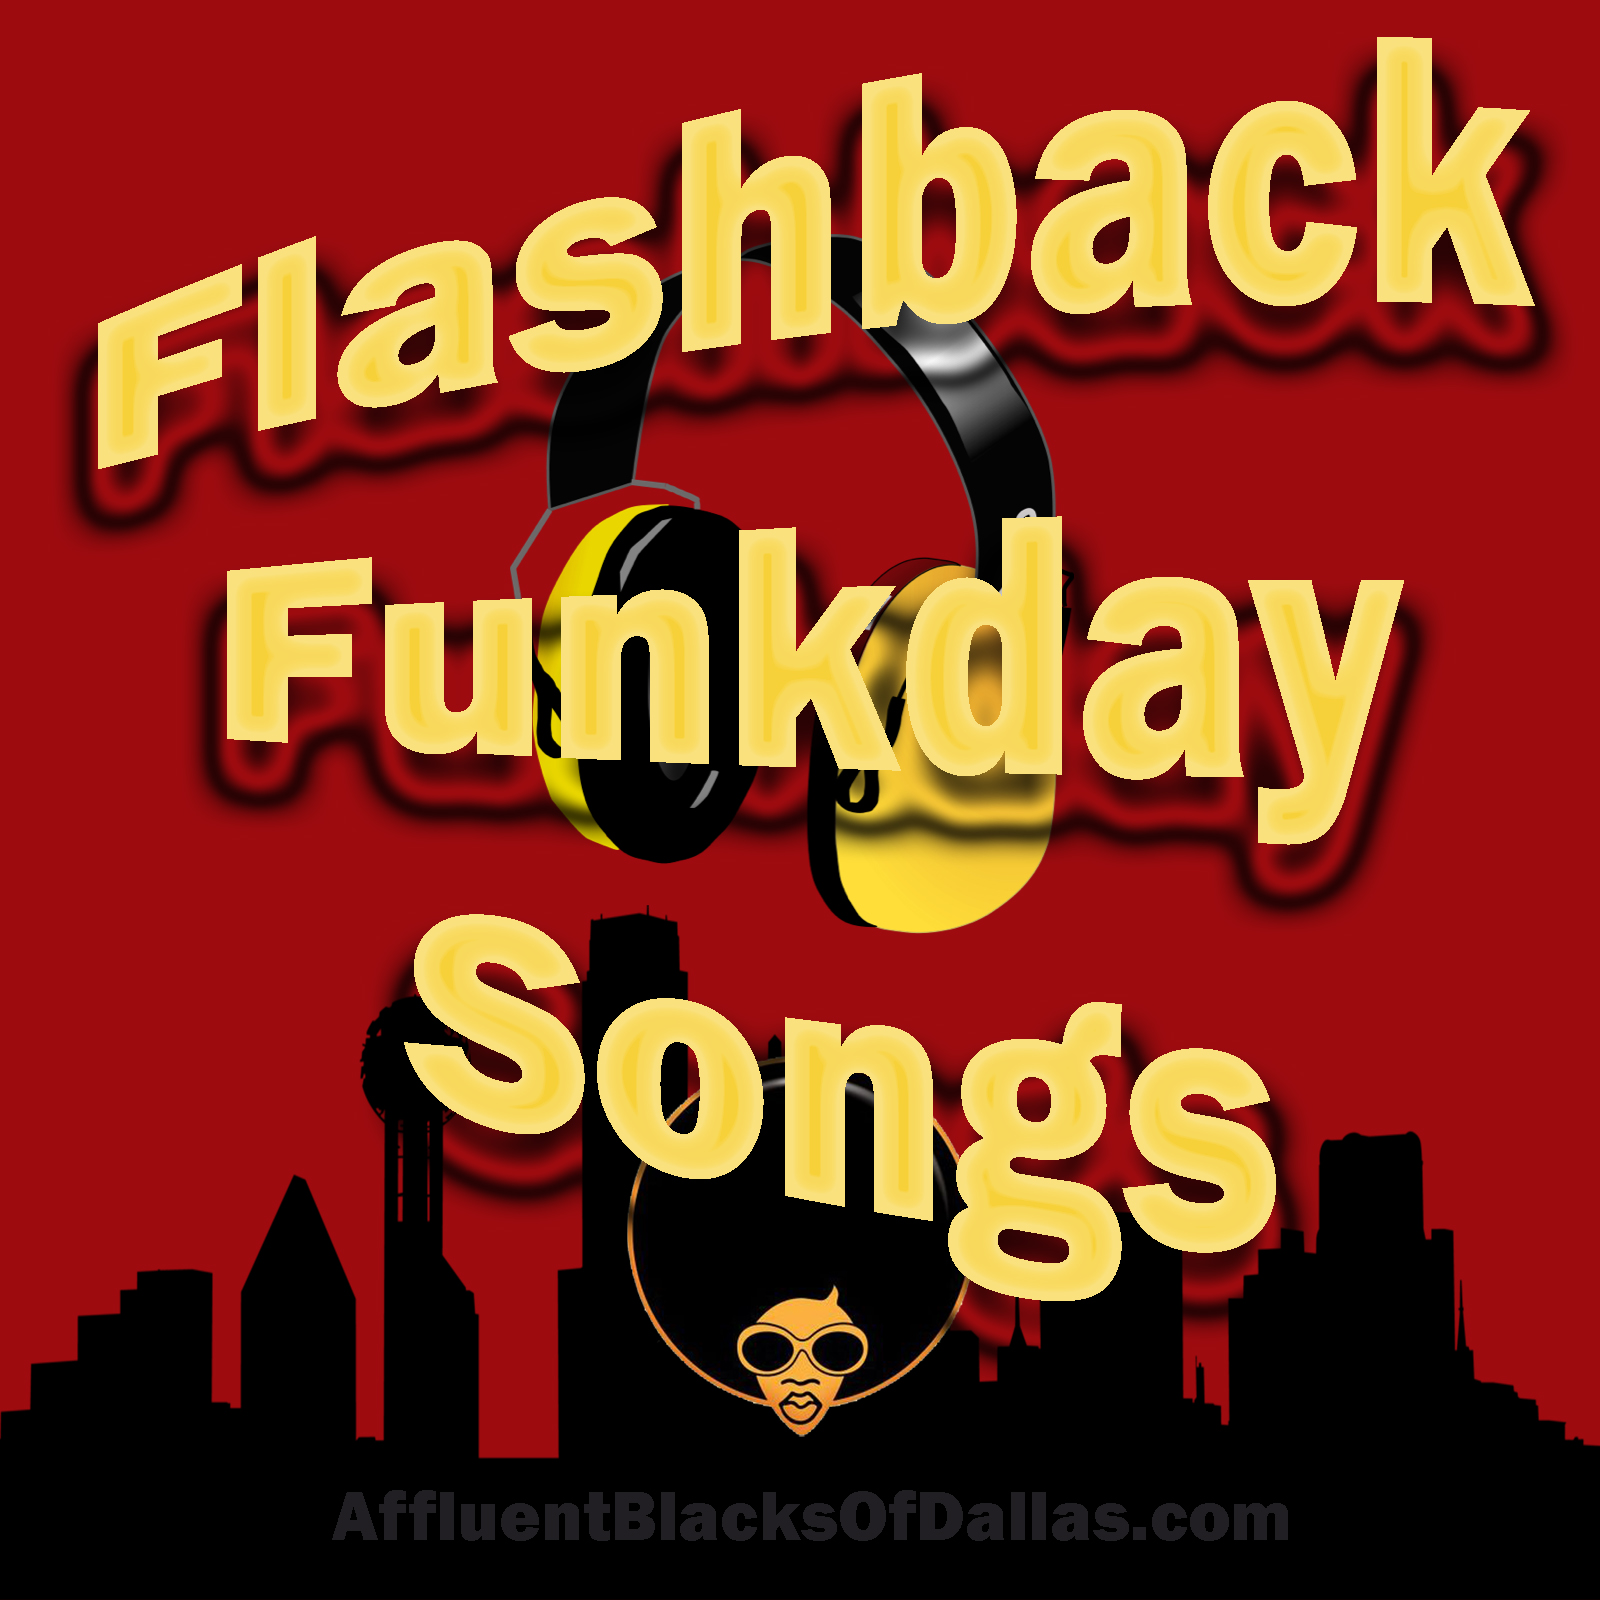 Wha' Choo Know 'Bout Them Flashback Funkday Songs?